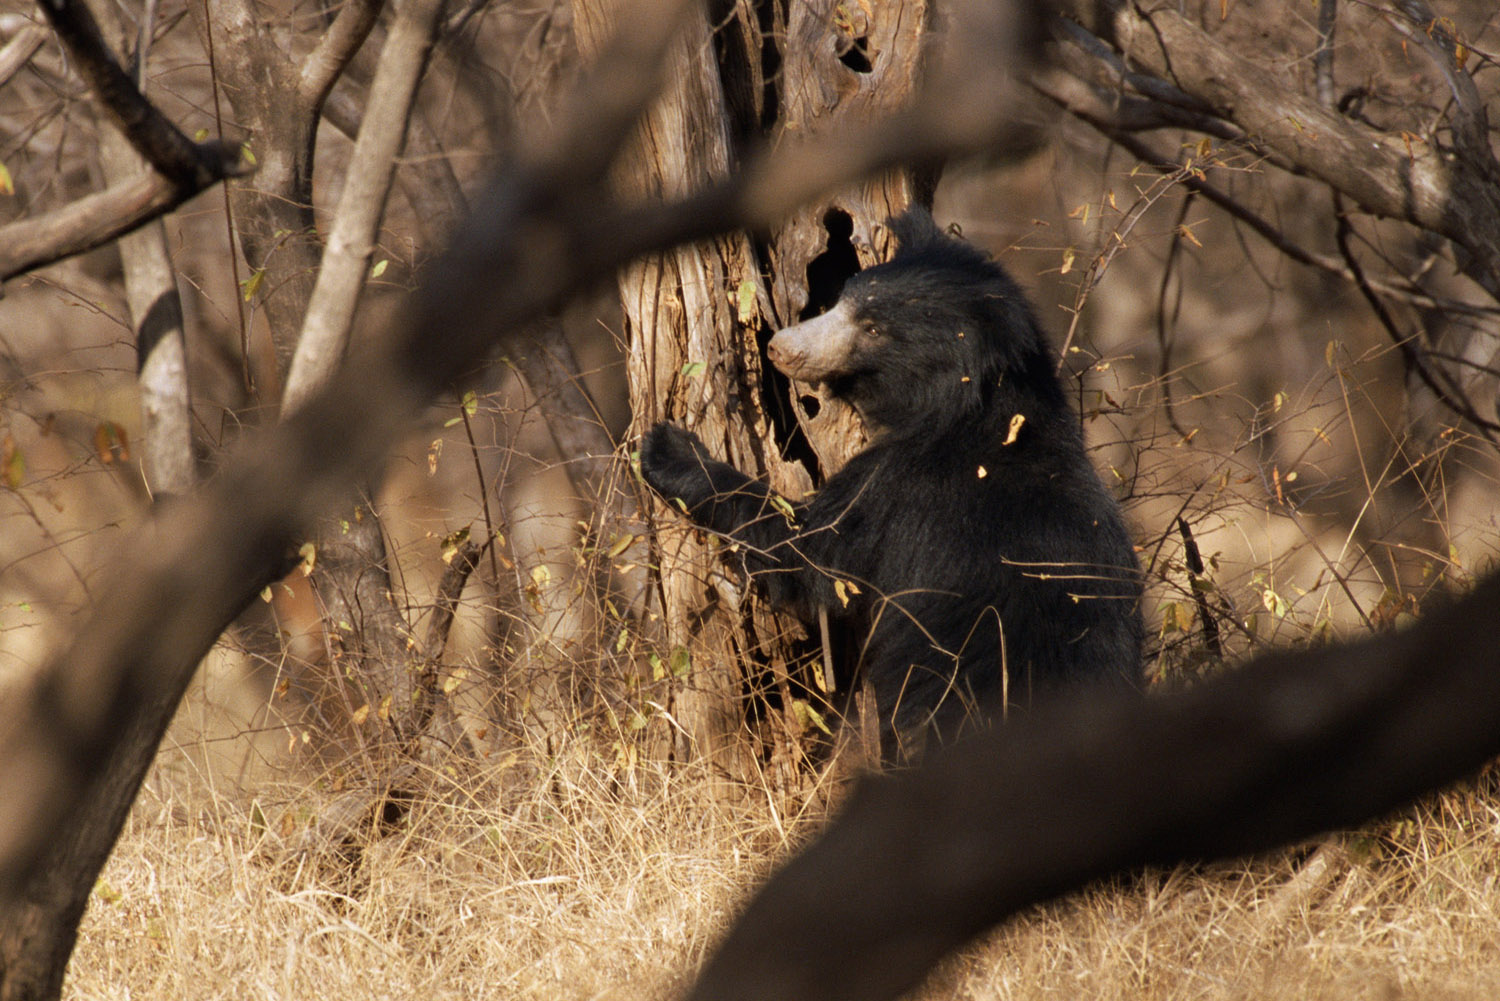 Sloth bear foraging, Ranthambhore National Park, Rajasthan, India